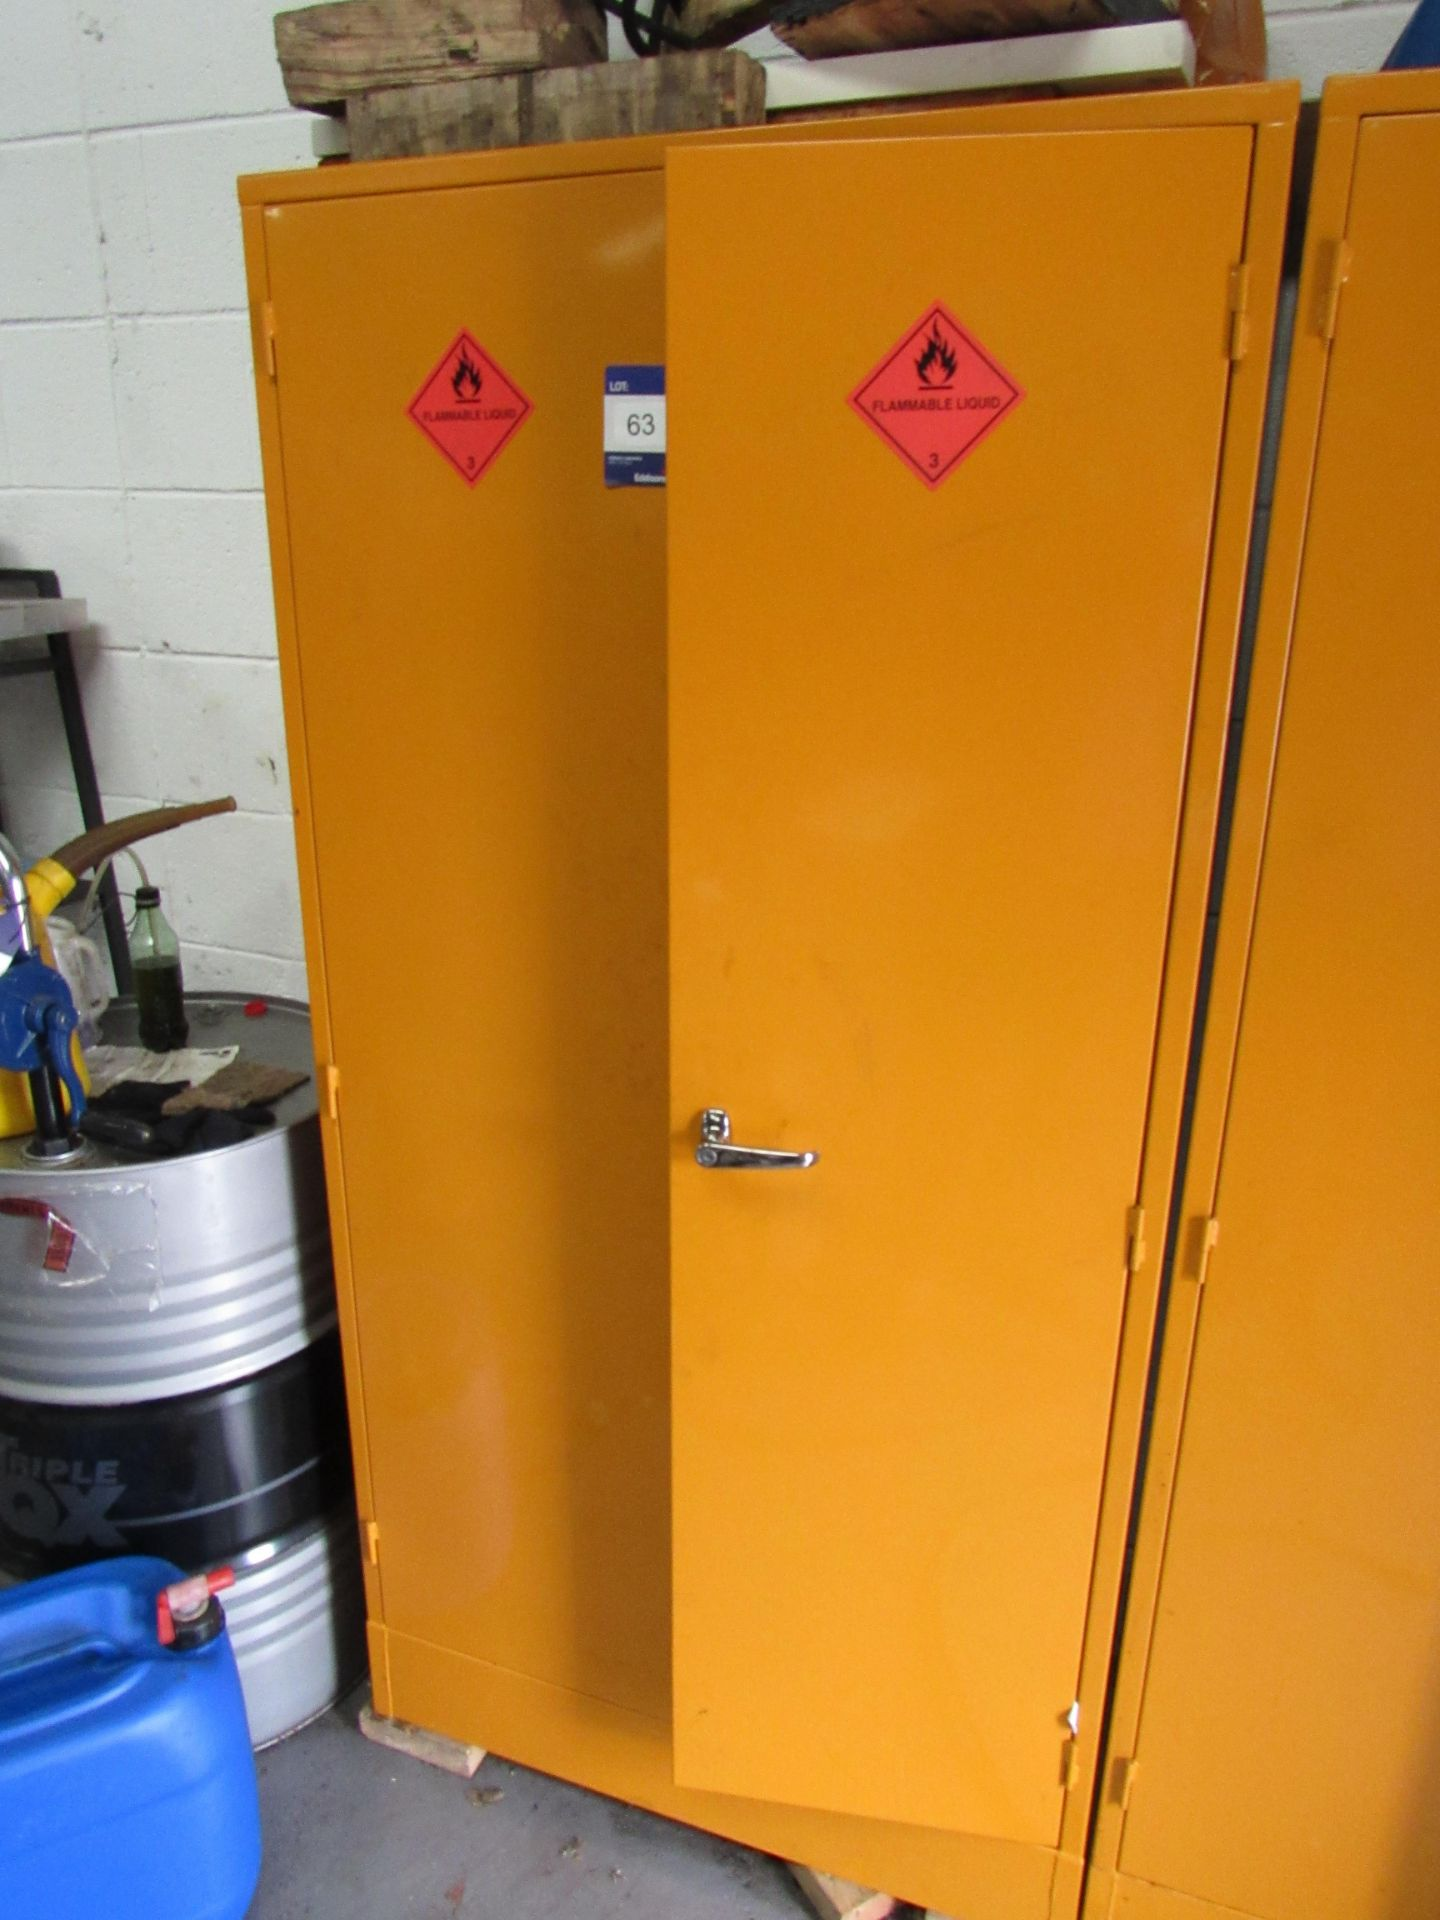 Lot 63 - Steel Flammables Cabinet and Contents (Located at Unit 11)